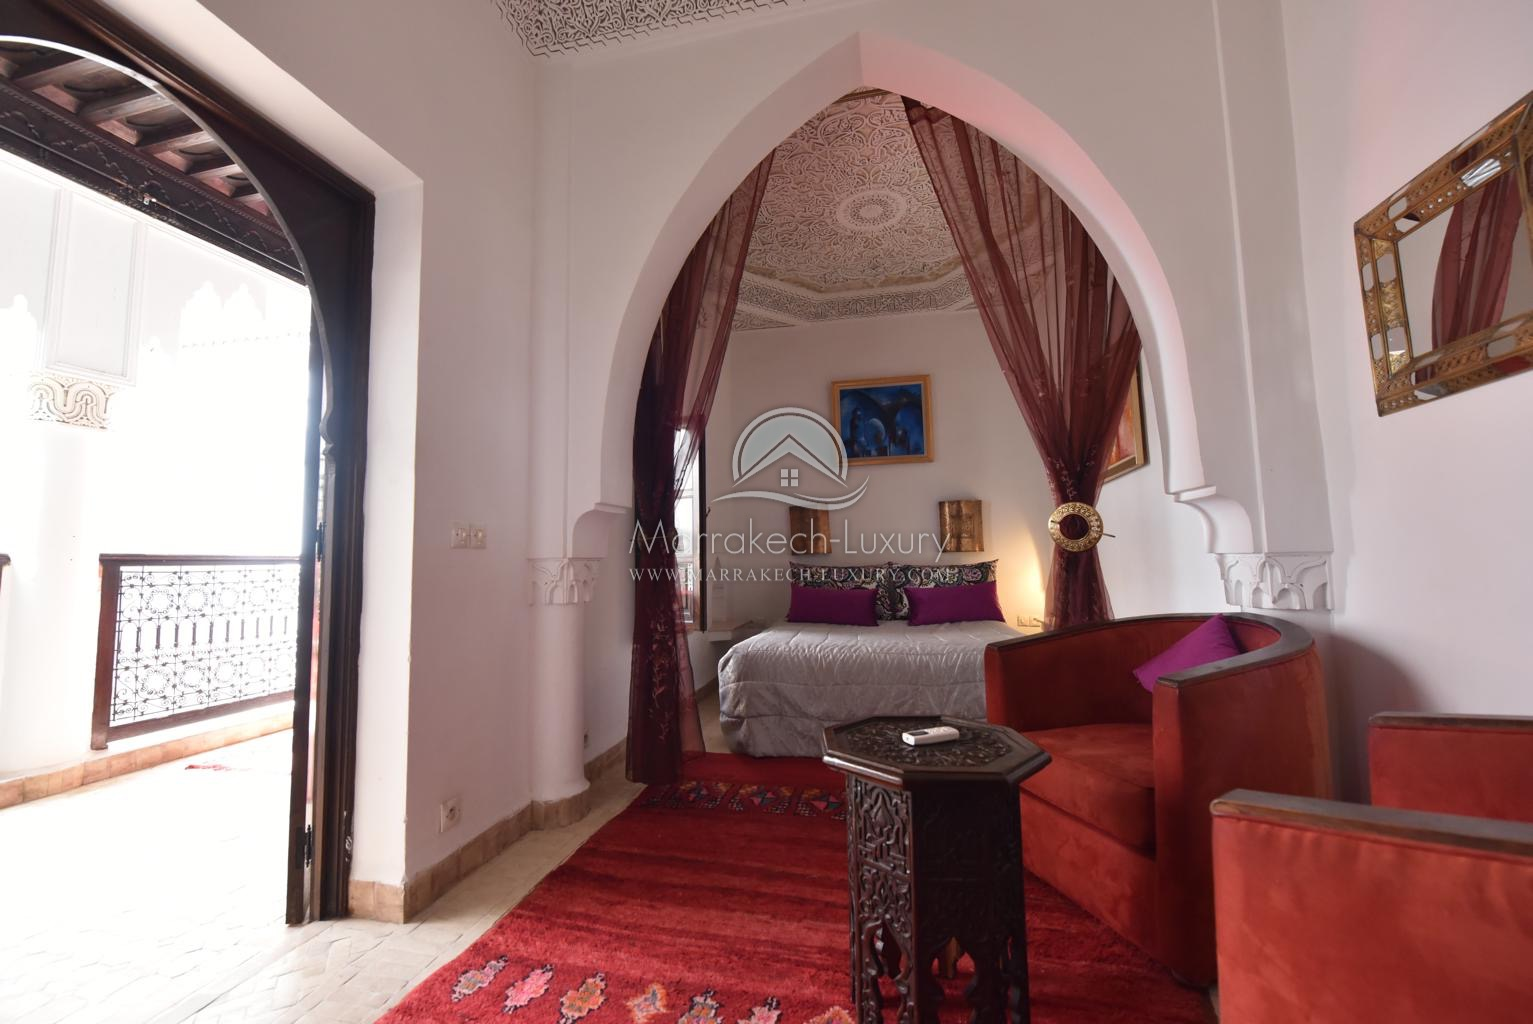 Riaavmed1037ma 37 agence immobili re marrakech acheter for Agence immobiliere 37